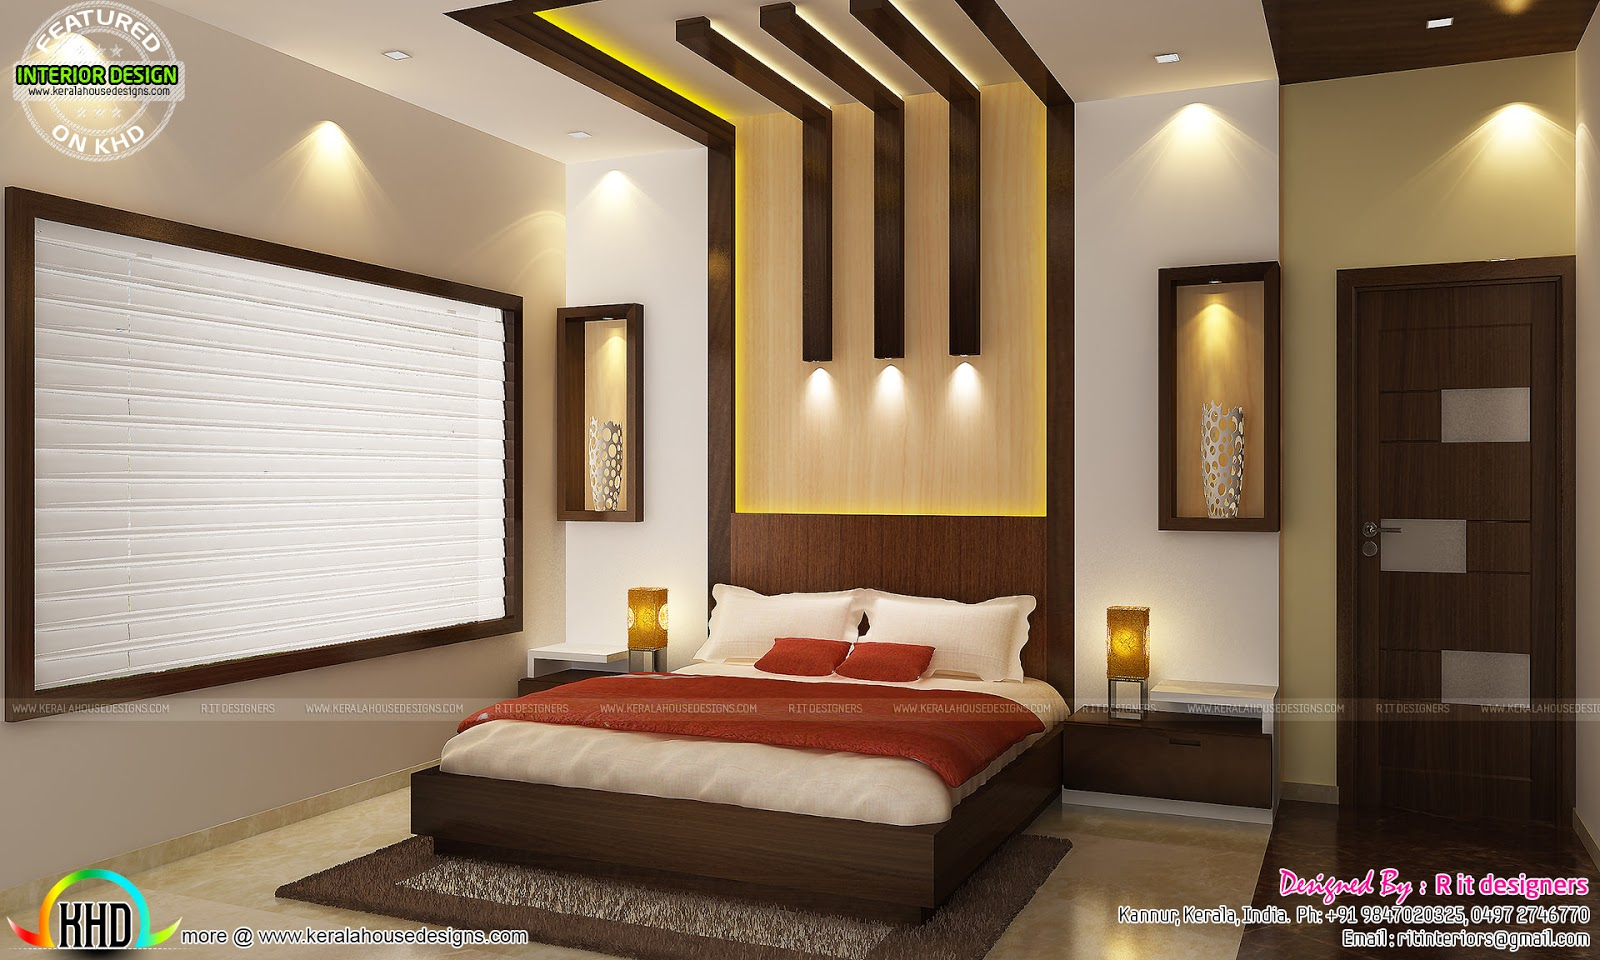 Kitchen living bedroom dining interior decor kerala for Bedroom interior design india